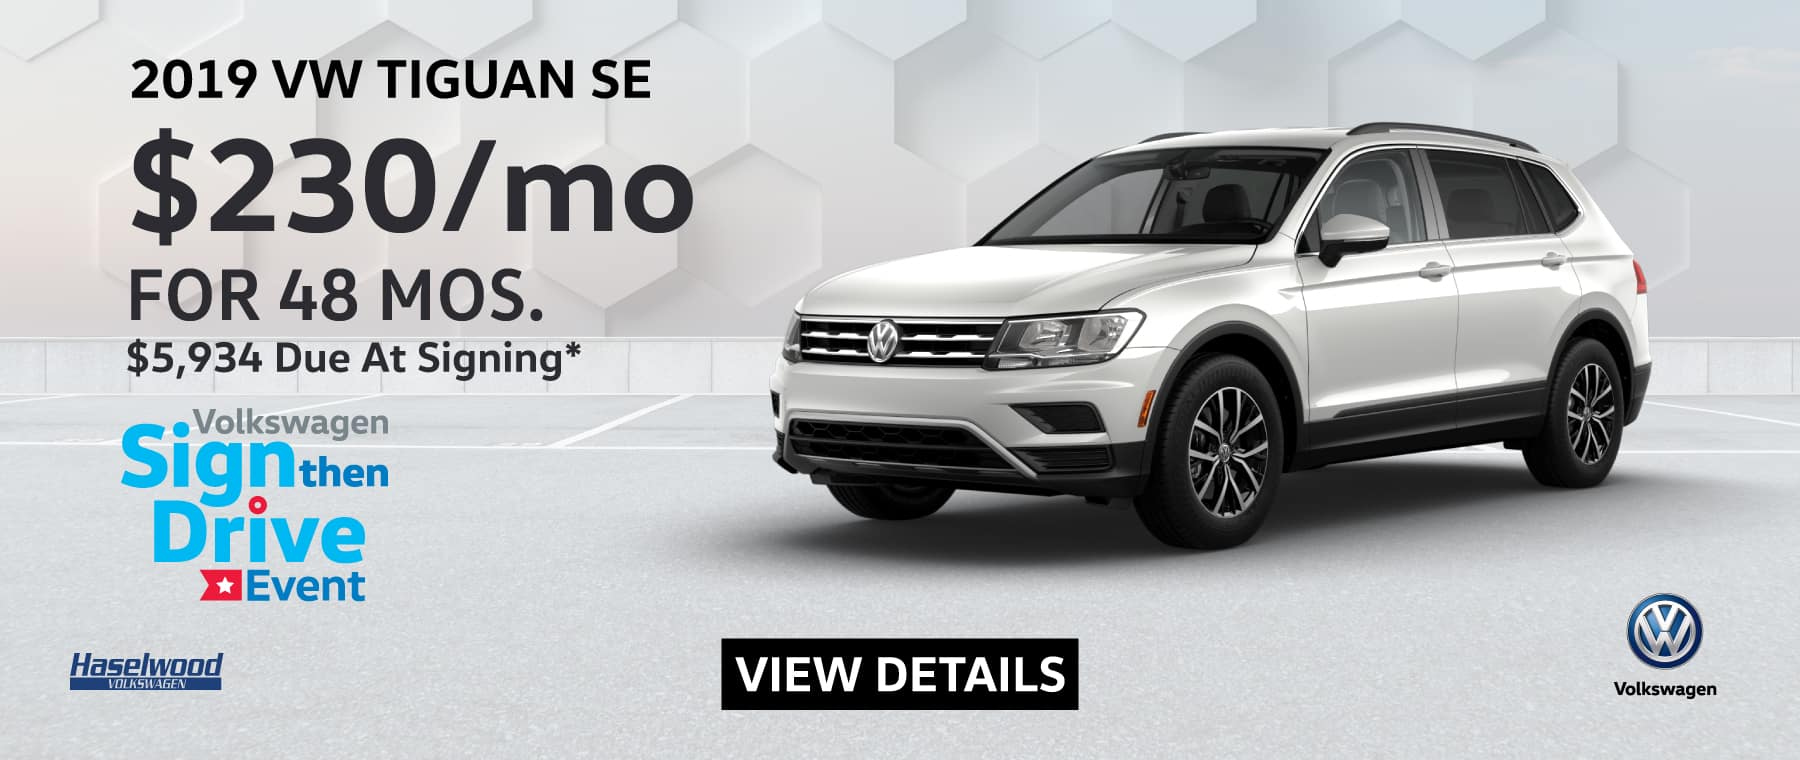 2019 Volkswagen Tiguan SE $230/mo. for 48 months $5,934 Due at Signing    * Offer valid on 2019 Volkswagen Tiguan SE. $230 per mo. for 48 months. Lease with $5,934 down; includes a $595 acquisition fee, finance through Volkswagen Credit. No security deposit required. Valid on VIN: 3VV2B7AX5KM043435. For highly qualified customers on approved top tier credit through Volkswagen Credit. Lessee responsible for maintenance, excessive wear/tear and 20¢/mi over 10K mi/yr. Excludes state and local taxes, tags, registration and title, insurance and dealer charges. Subject to credit approval. 48 monthly payments required. Monthly lease payment based on MSRP of $29,670 and destination charges less a suggested dealer contribution resulting in a Gross capitalized cost of $27,940. Cap cost reduction: $1,730. A negotiable dealer documentary service fee of up to $150 may be added to the sale price or capitalized cost. See dealer for complete details and restrictions. 6 years/72,000 miles (whichever occurs first). New Vehicle Limited Warranty on MY2018 and newer VW vehicles, excluding e-Golf. See owner's literature or dealer for warranty exclusions and limitations. Exp. 5/31/2019.